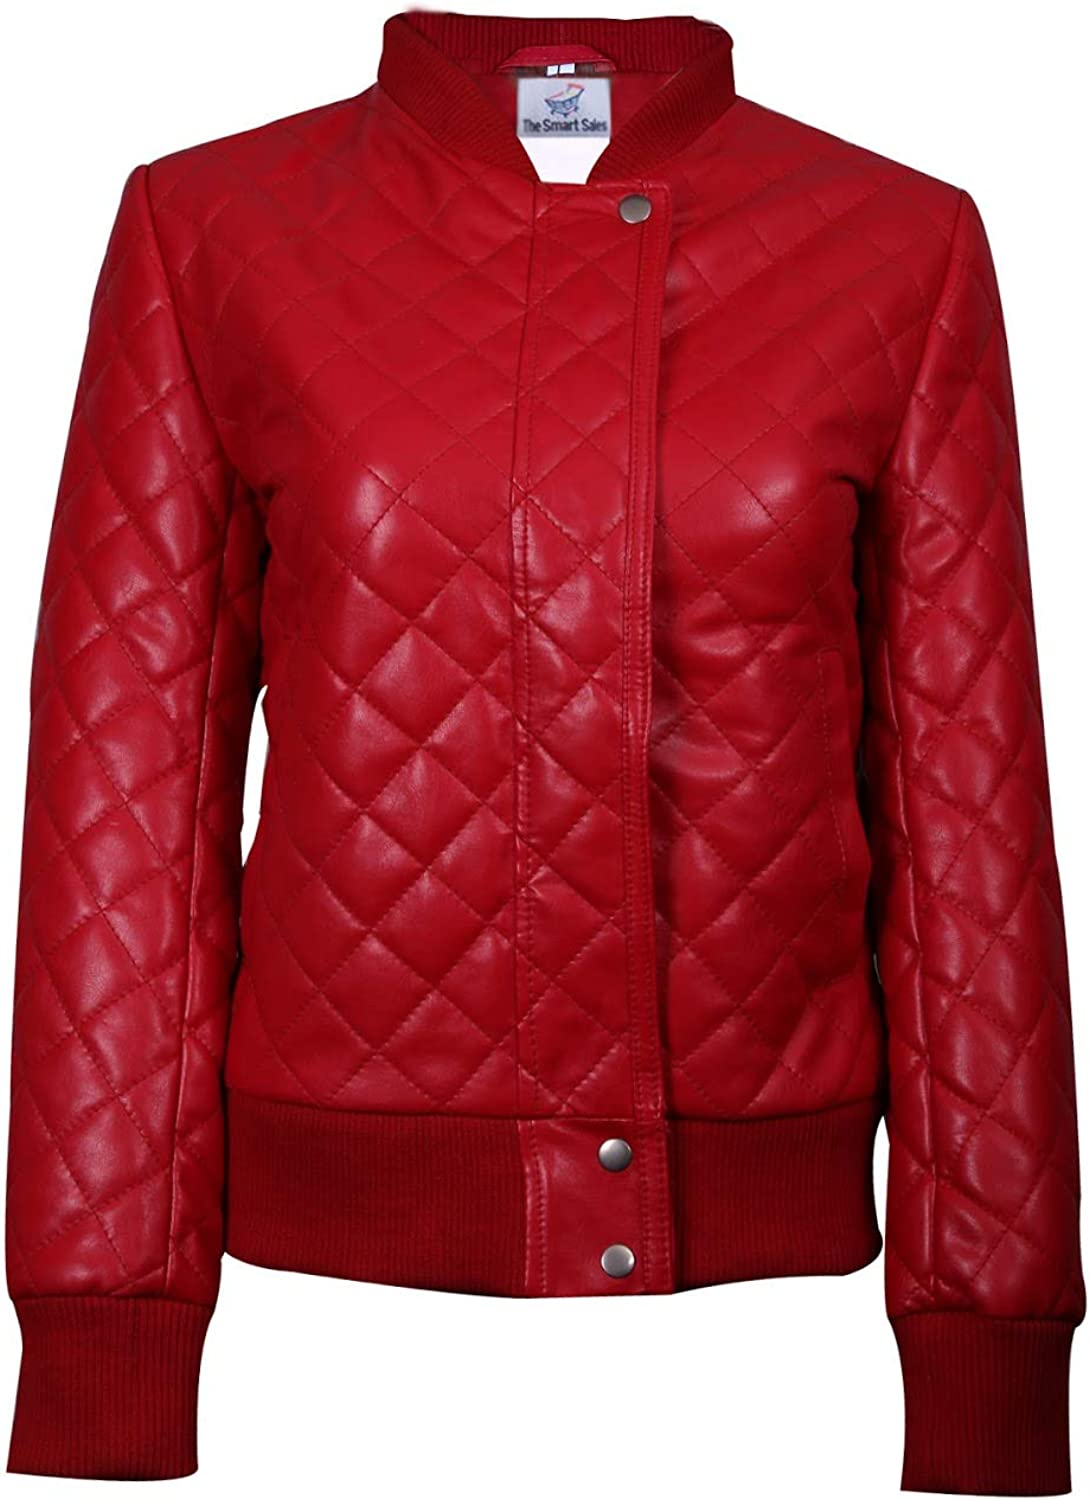 TheSmartSales Assez Red Quilted Bomber Womens Faux Leather Jacket